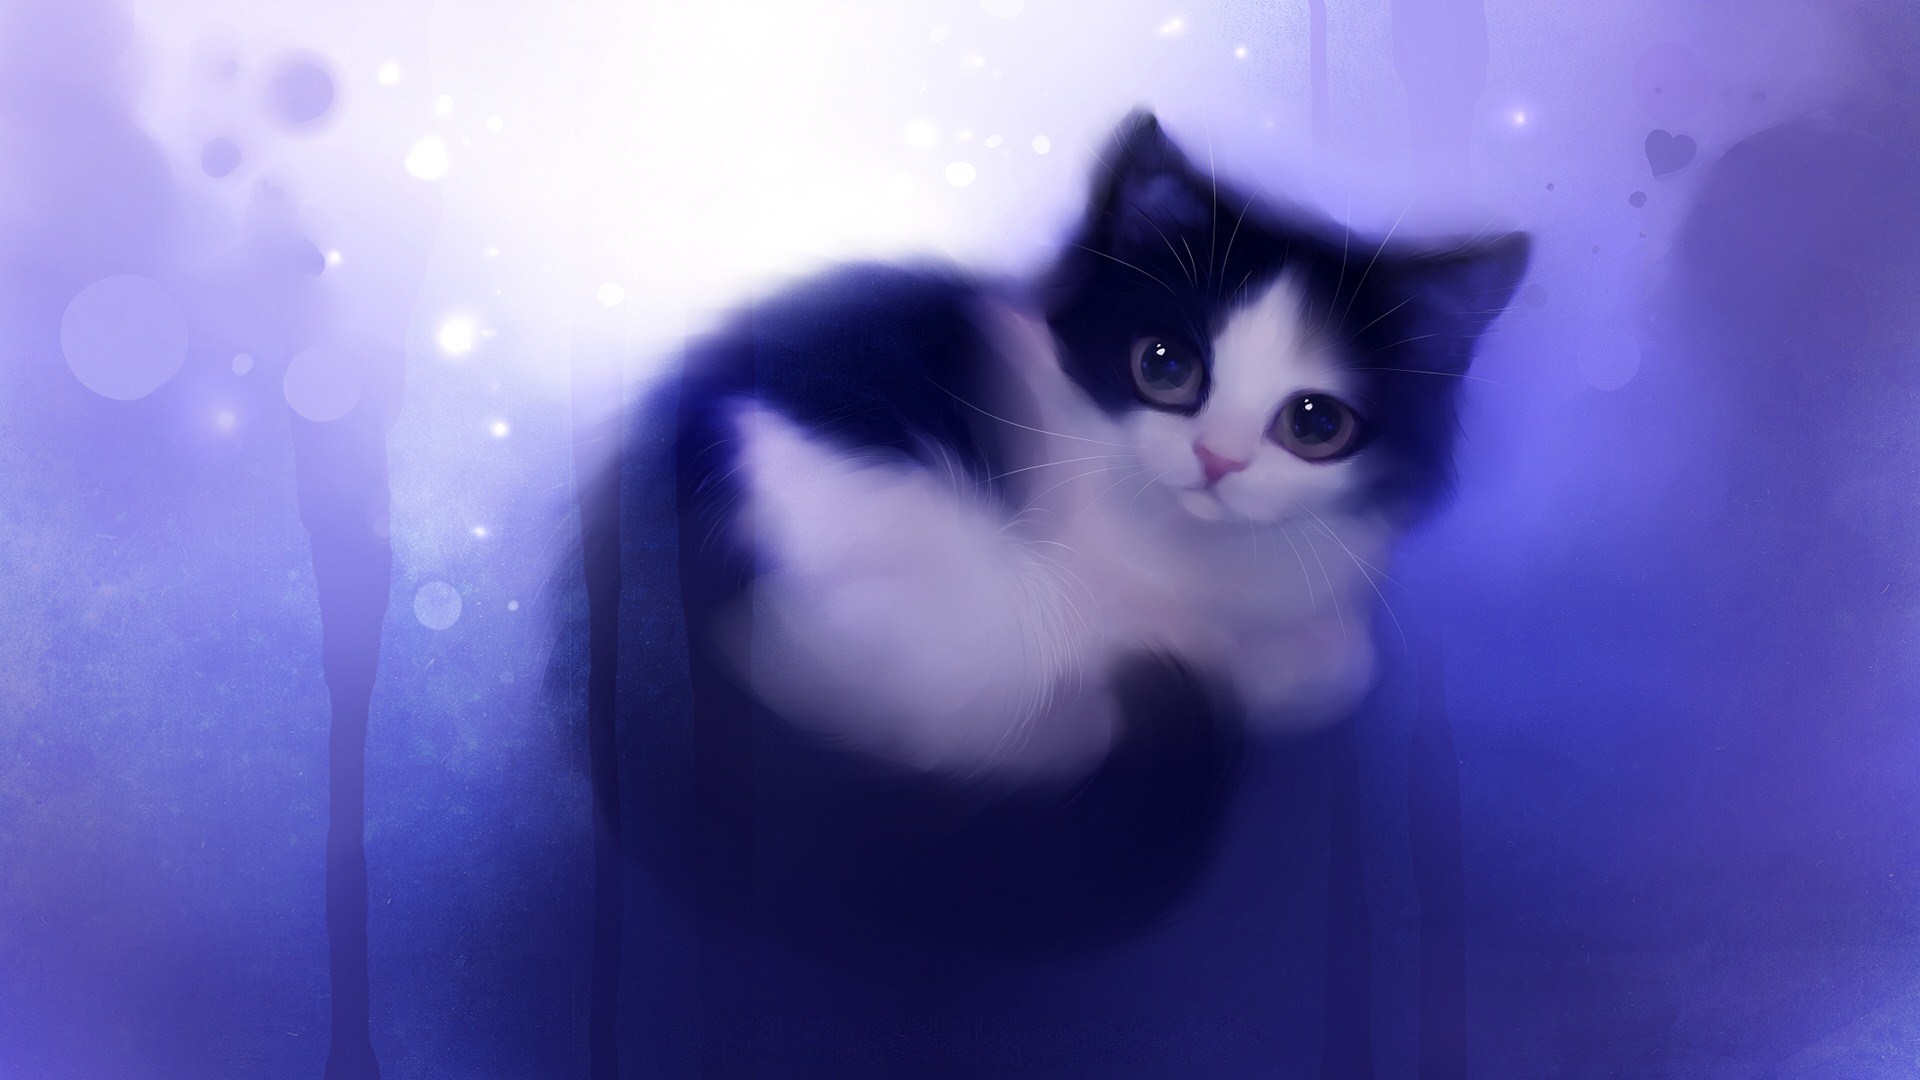 Free Download Adorable Cat Wallpaper Cute Wallpaper Share This Cute Wallpaper On 1920x1080 For Your Desktop Mobile Tablet Explore 46 Cute Cartoon Cat Wallpaper Cute 3d Wallpaper 3d Cute